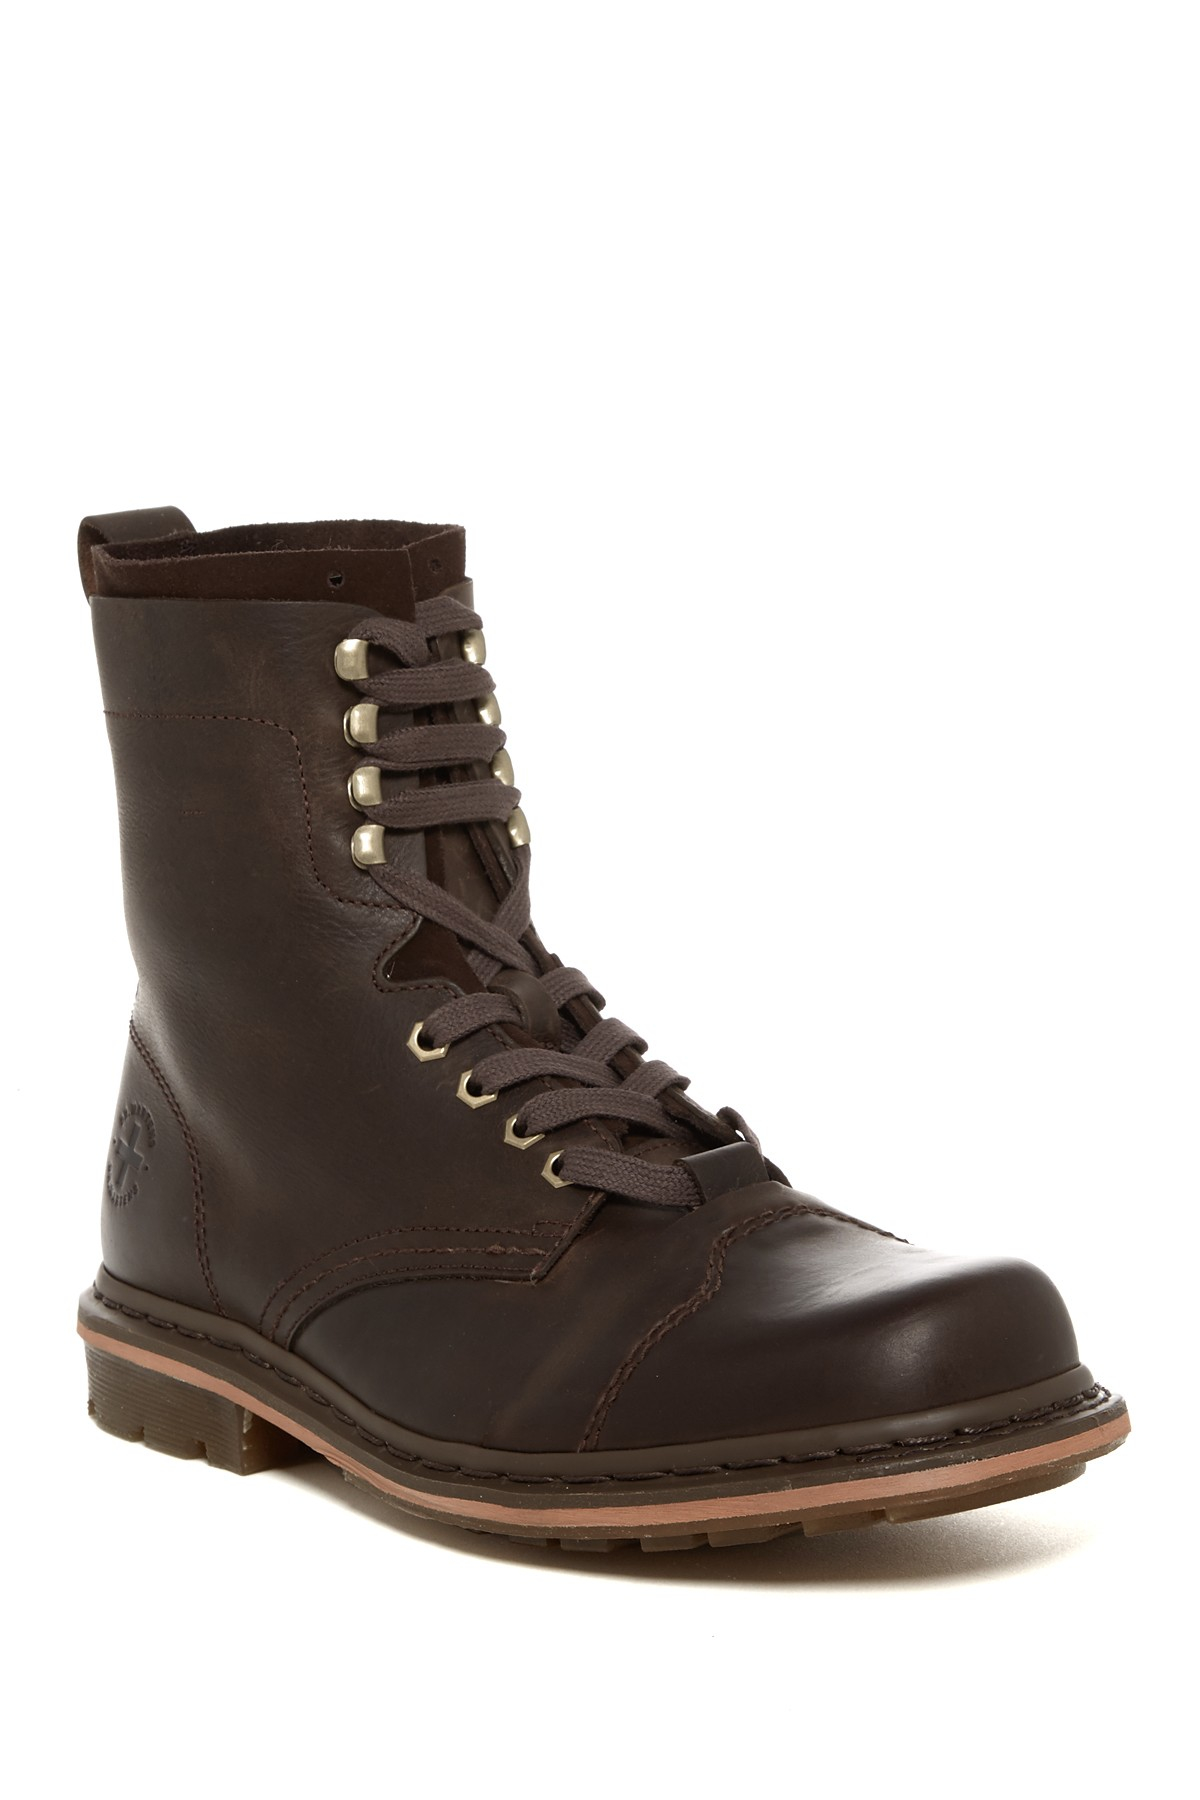 for sale dr martens pier cap toe combat boots unisex dark brown leather new